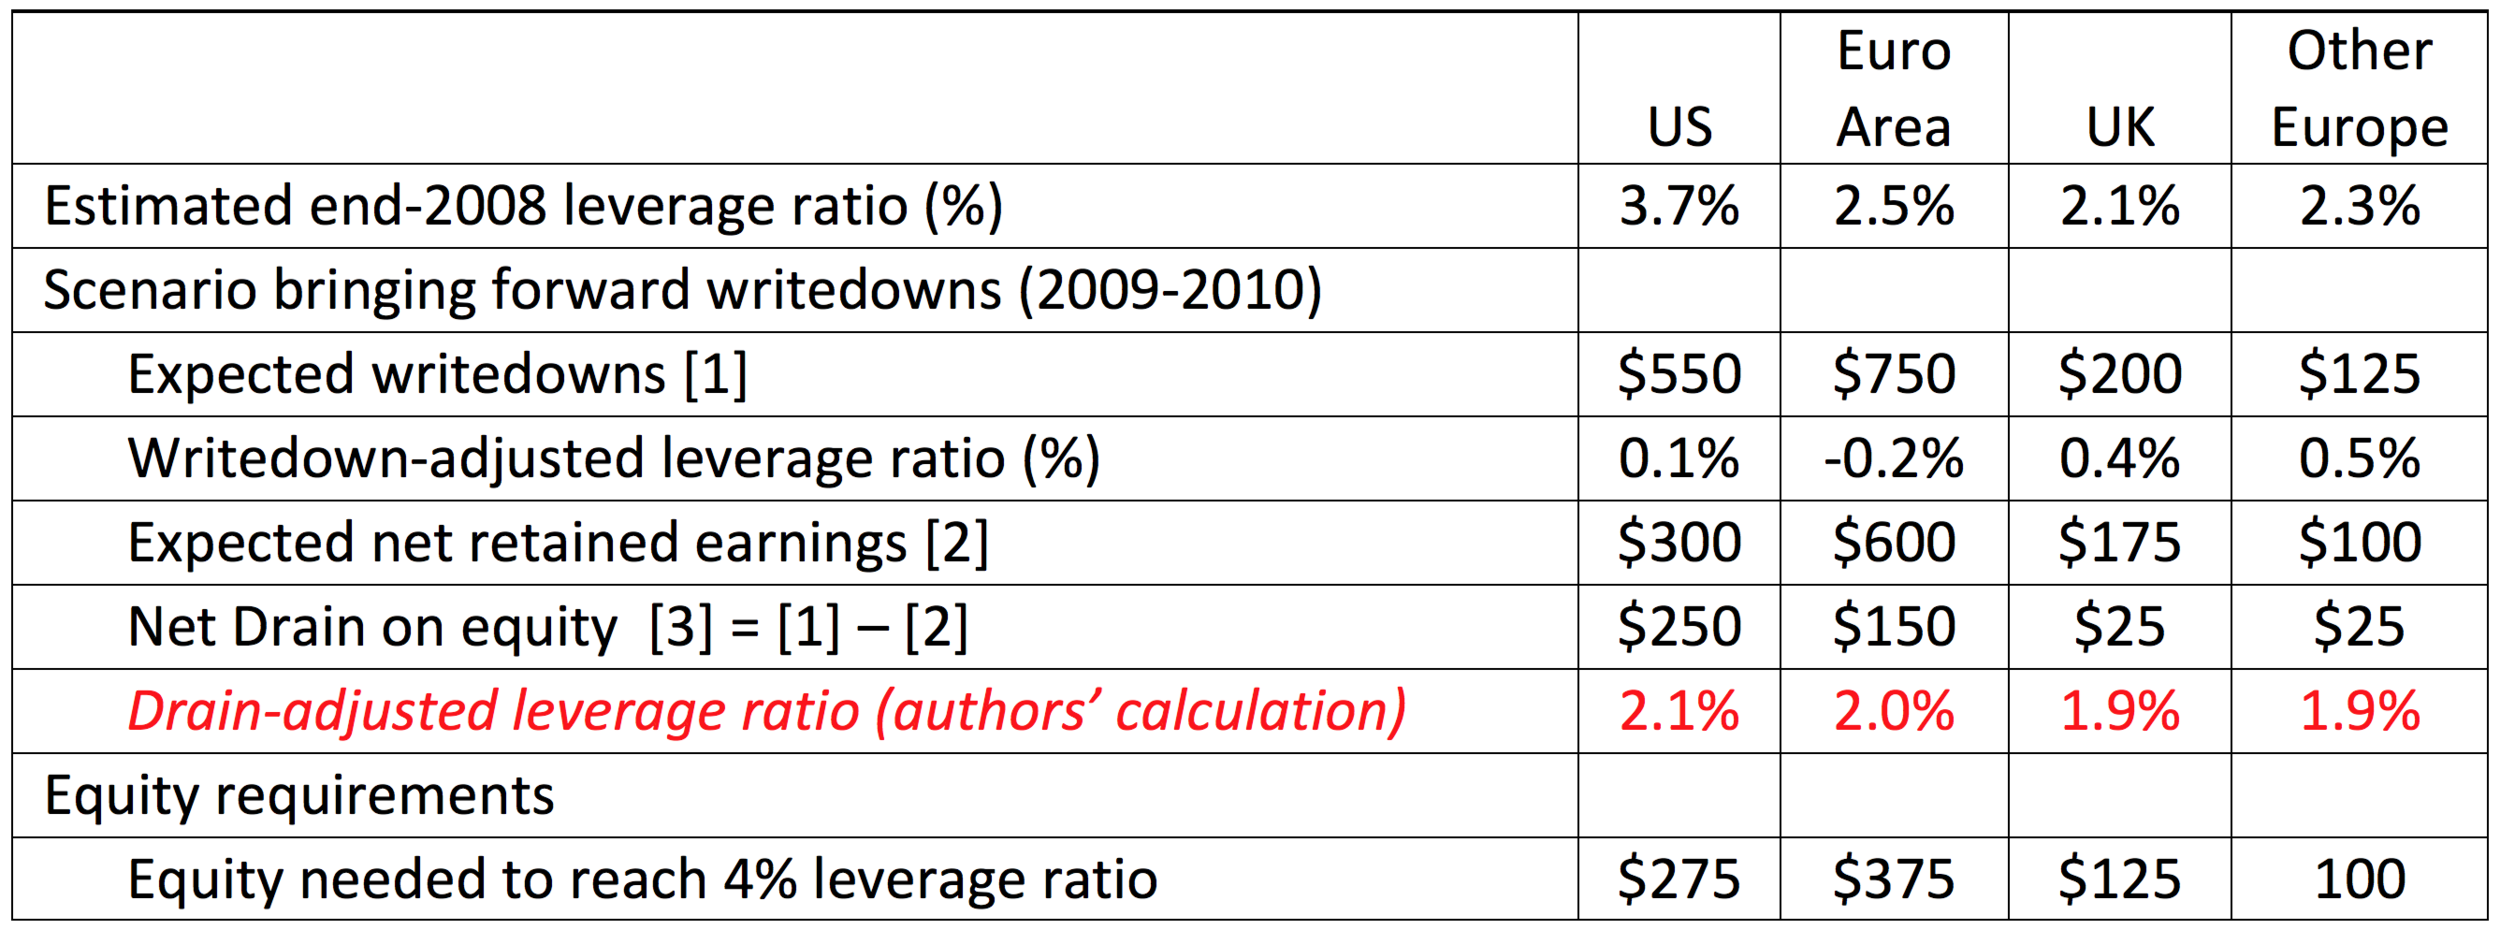 Source: IMF   Global Financial Stability Report  , April 2009, Table 1.4, page 36. Notes: The leverage ratio is the ratio of total common equity to total assets. The authors' calculation of the drain-adjusted leverage ratio is based on an interpolation using the IMF estimated change between the end-2008 leverage ratio and the writedown-adjusted leverage ratio as well as the reported expected writedowns and the net drain on equity.